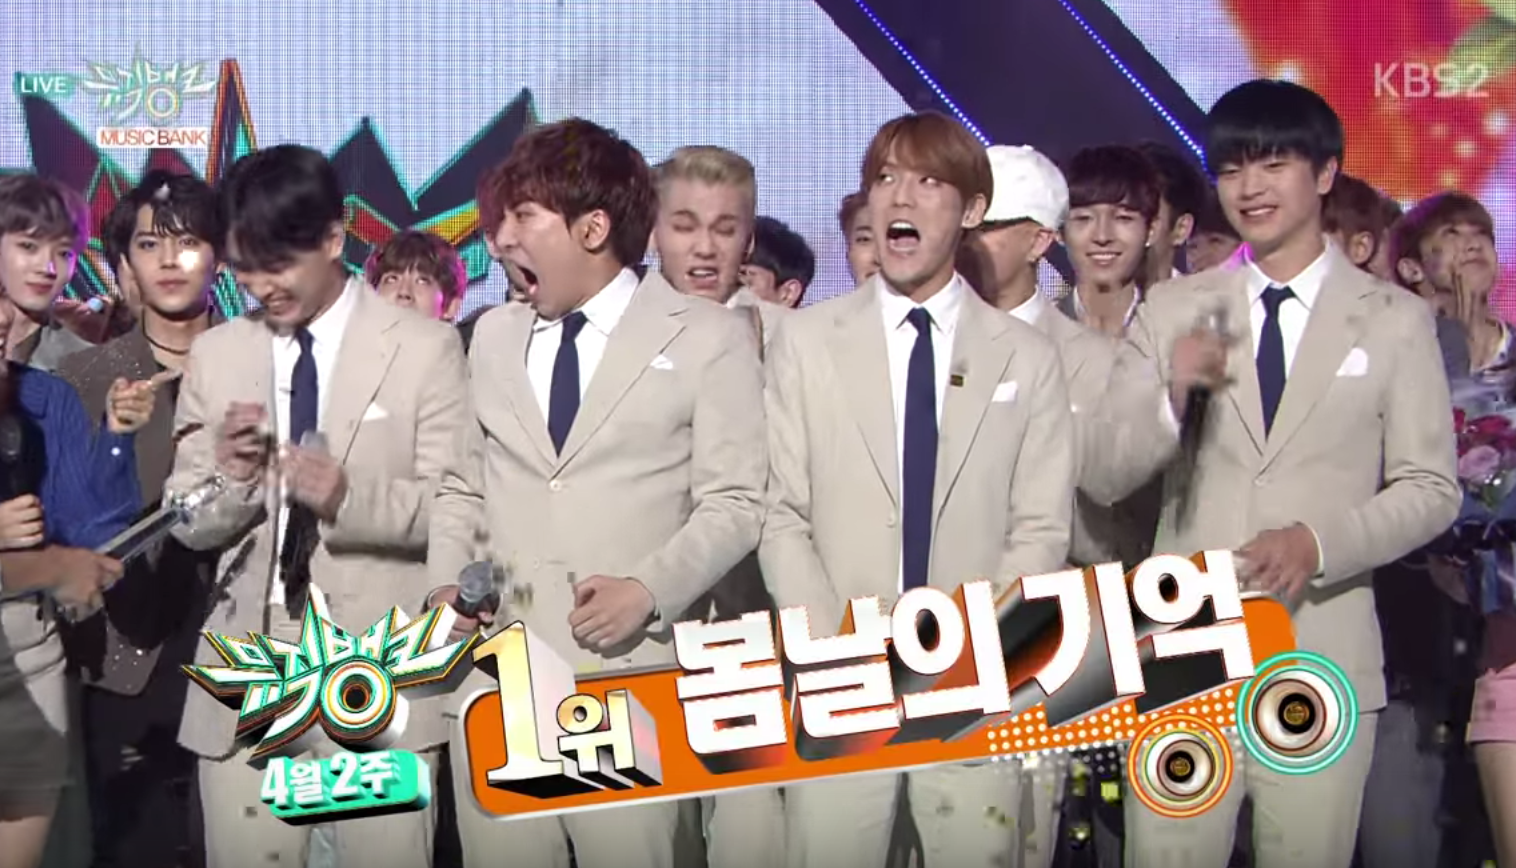 """Watch: BTOB Takes 3rd Win With """"Remember That"""" on """"Music Bank,"""" Performances by CNBLUE, GOT7, Davichi, and More"""